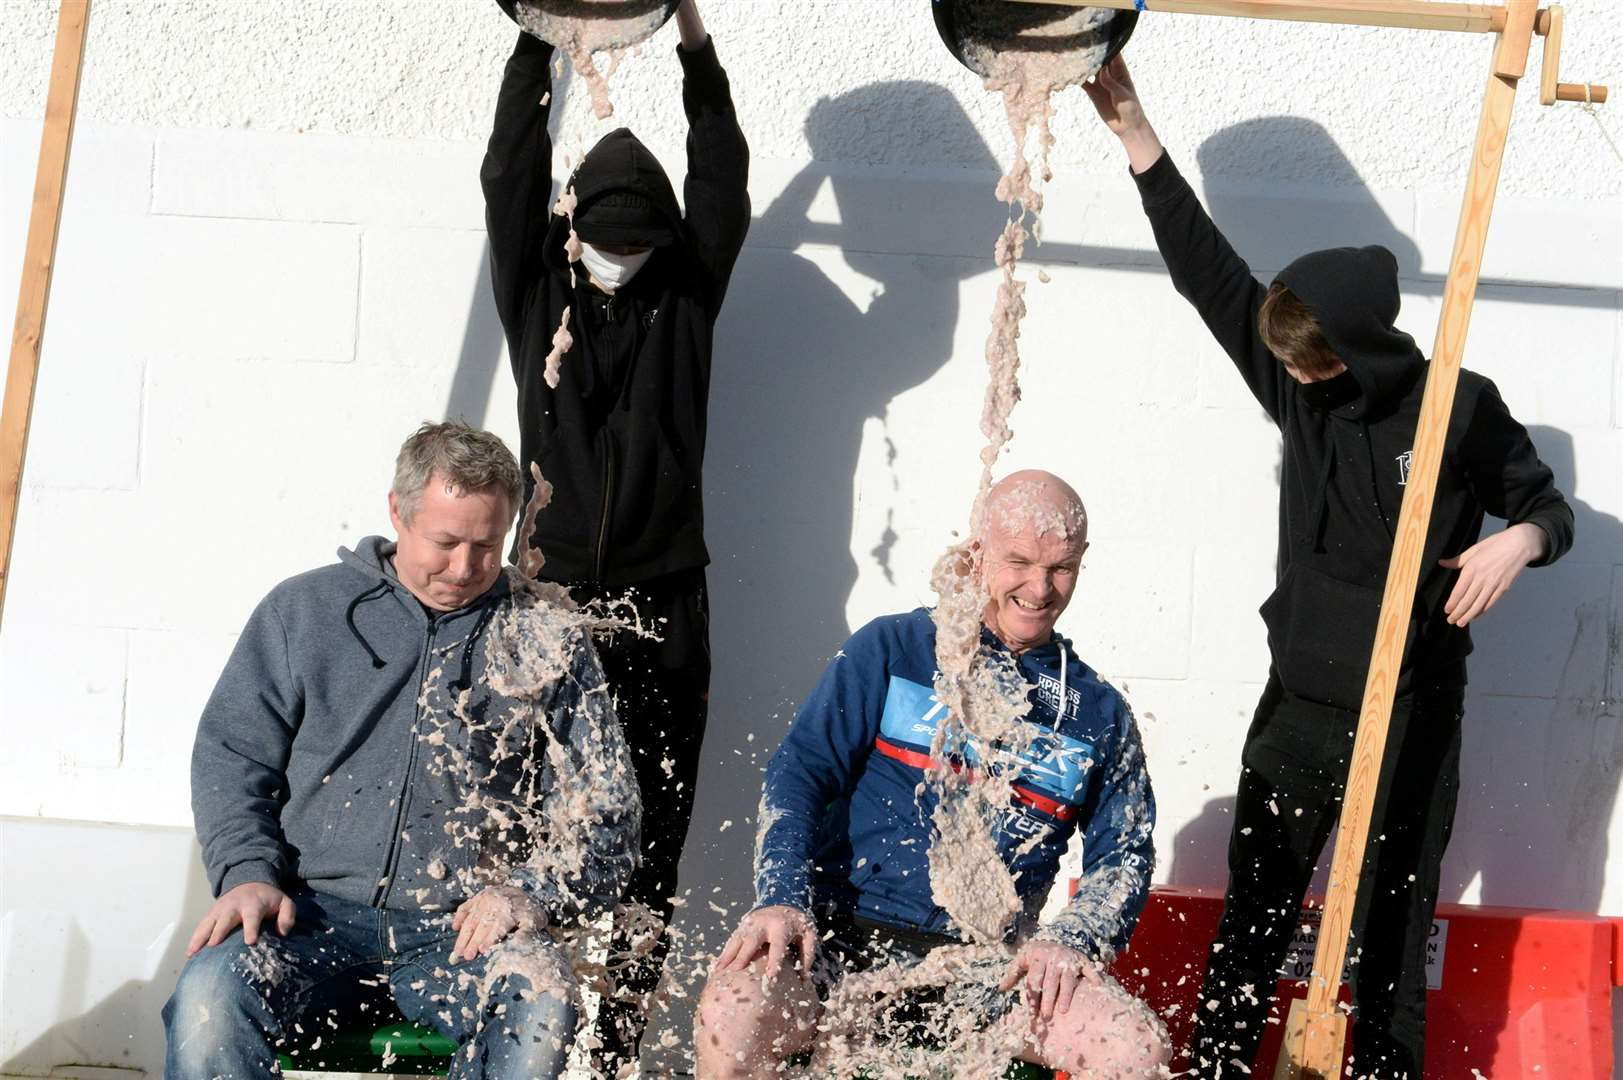 Computing teacher Darren Brown and PE teacher Bruce Morrison are gunged by Wiktor Chwalek and Scott Sutherland.